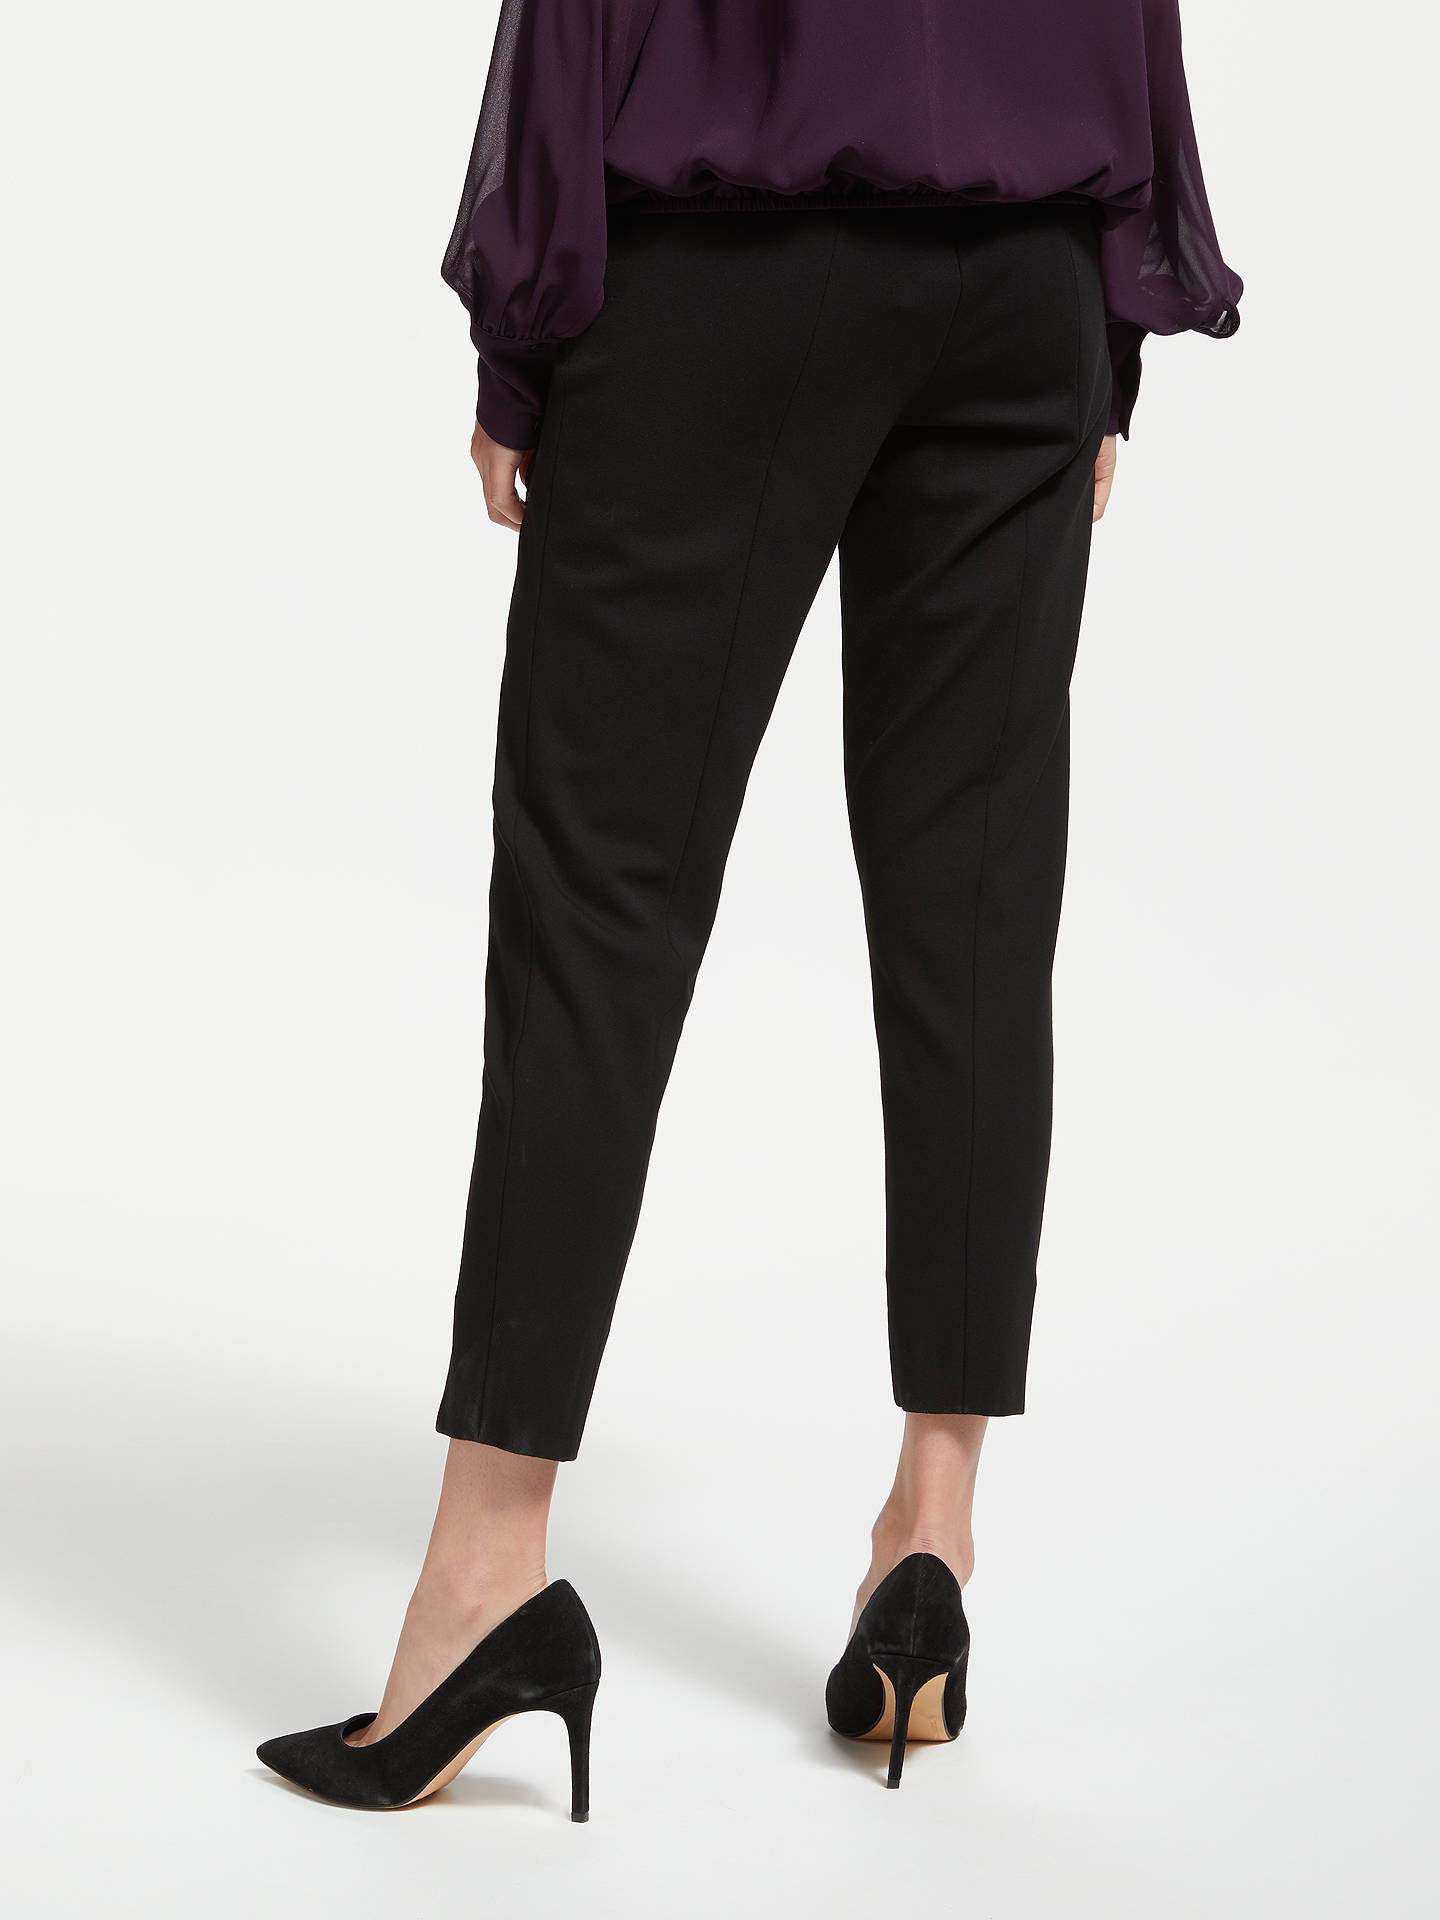 BuyBruce by Bruce Oldfield Slim Ponte Trousers, Black, 10 Online at johnlewis.com